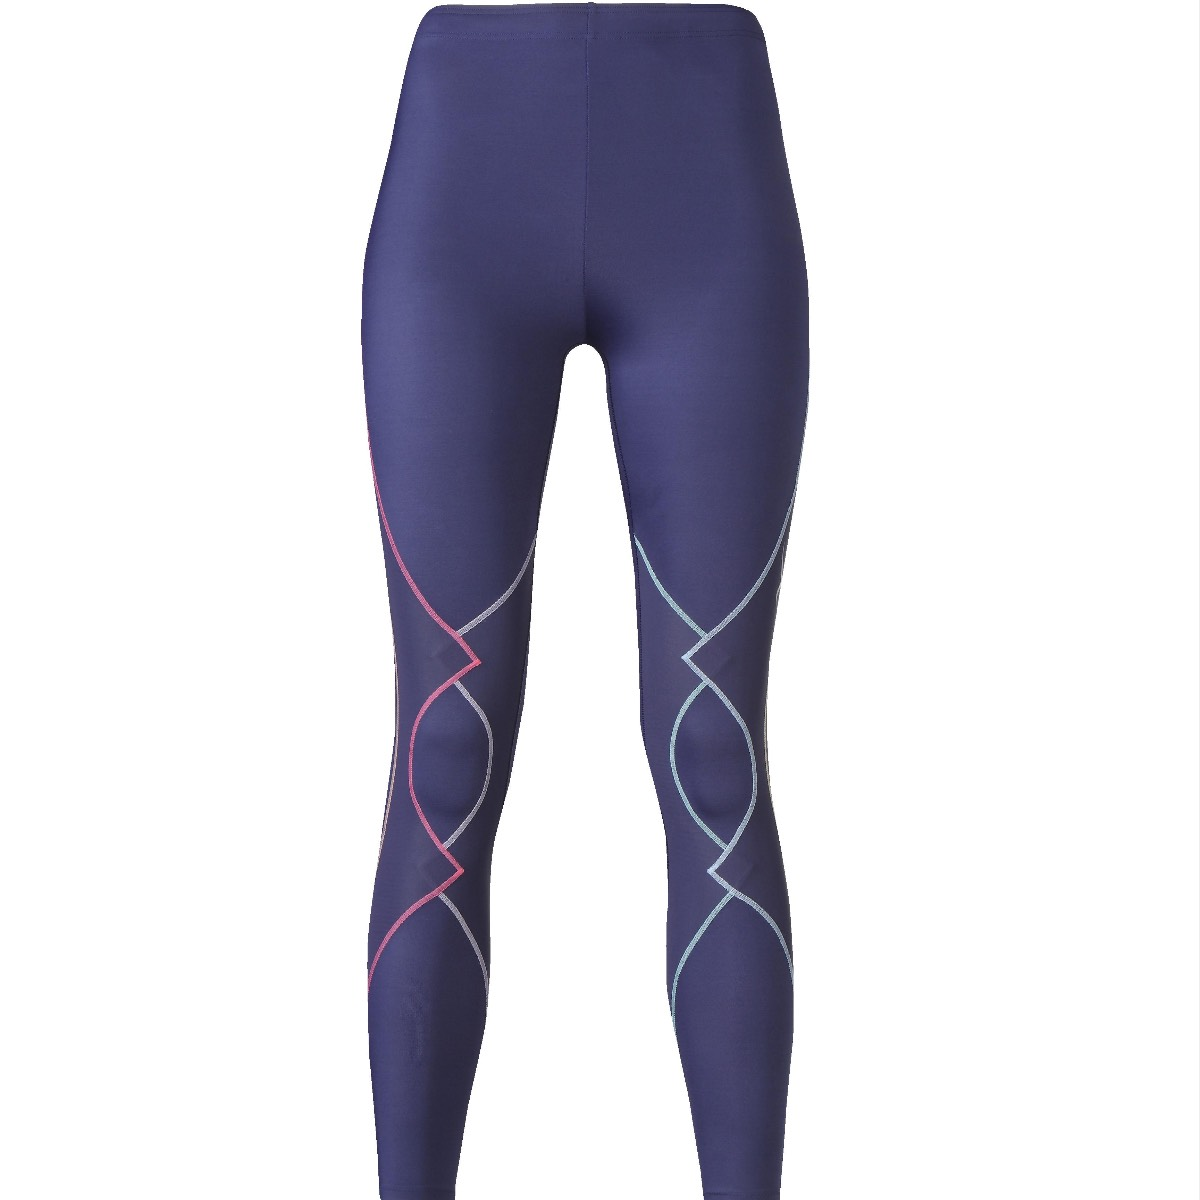 Cw-x Sports Compression Female0